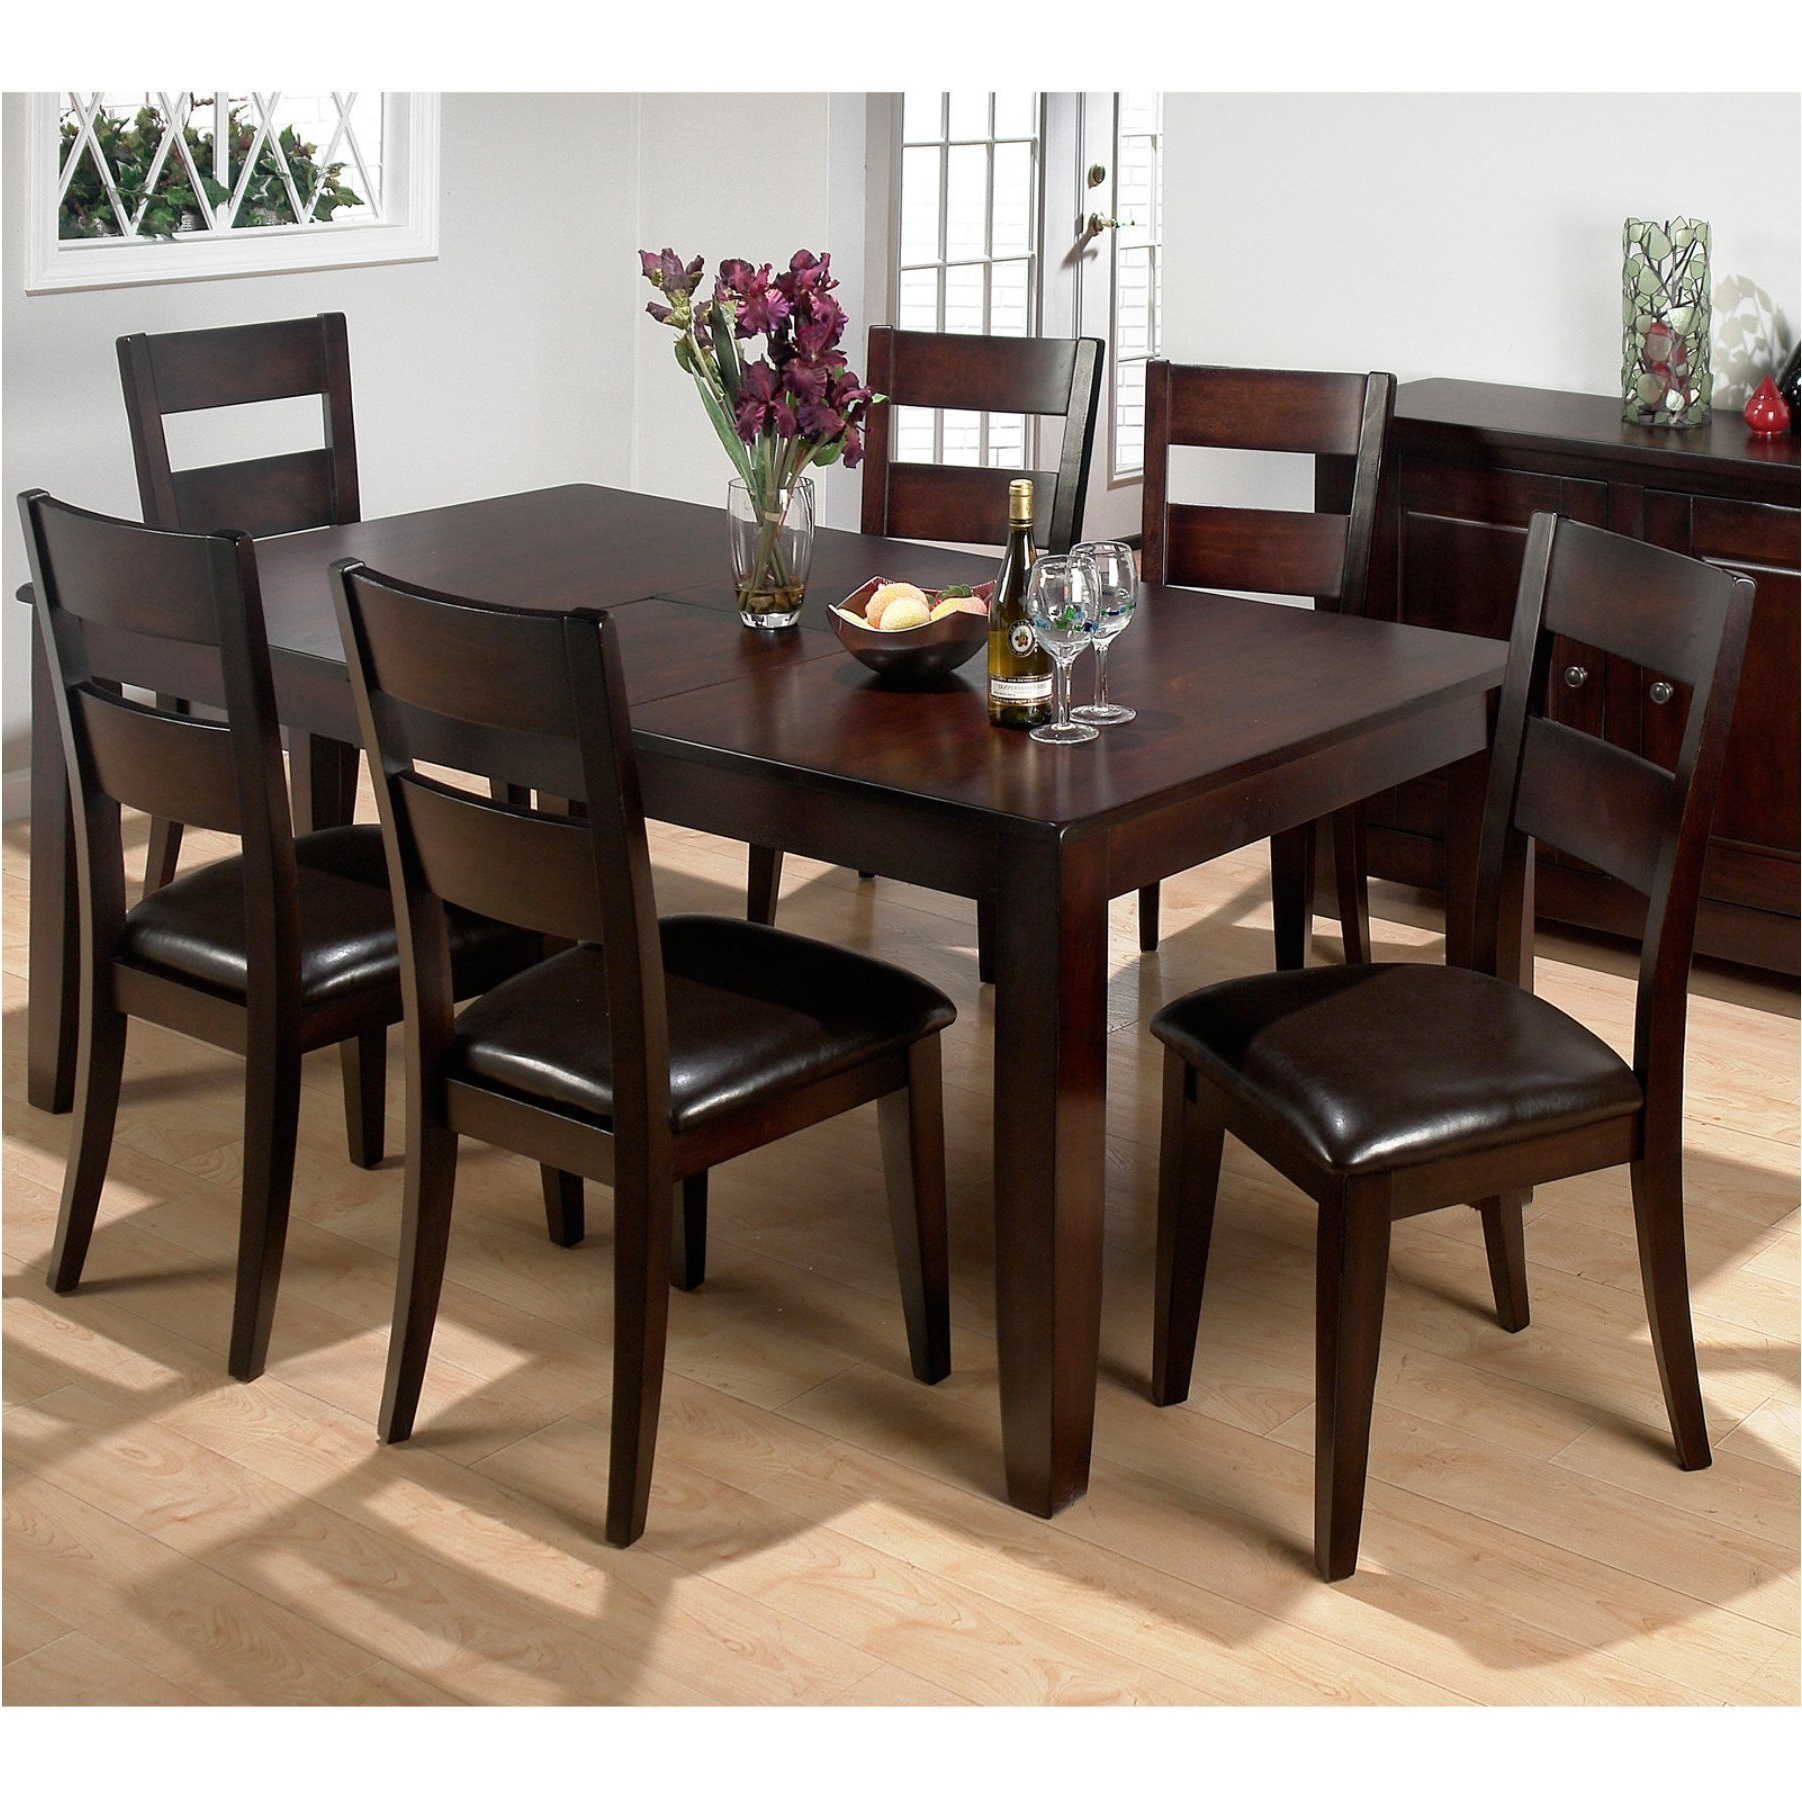 Newest Cheap Dining Sets Regarding Breathtaking Hampshire Oak Dining Set Dining Furniture B – Cheap (View 17 of 25)